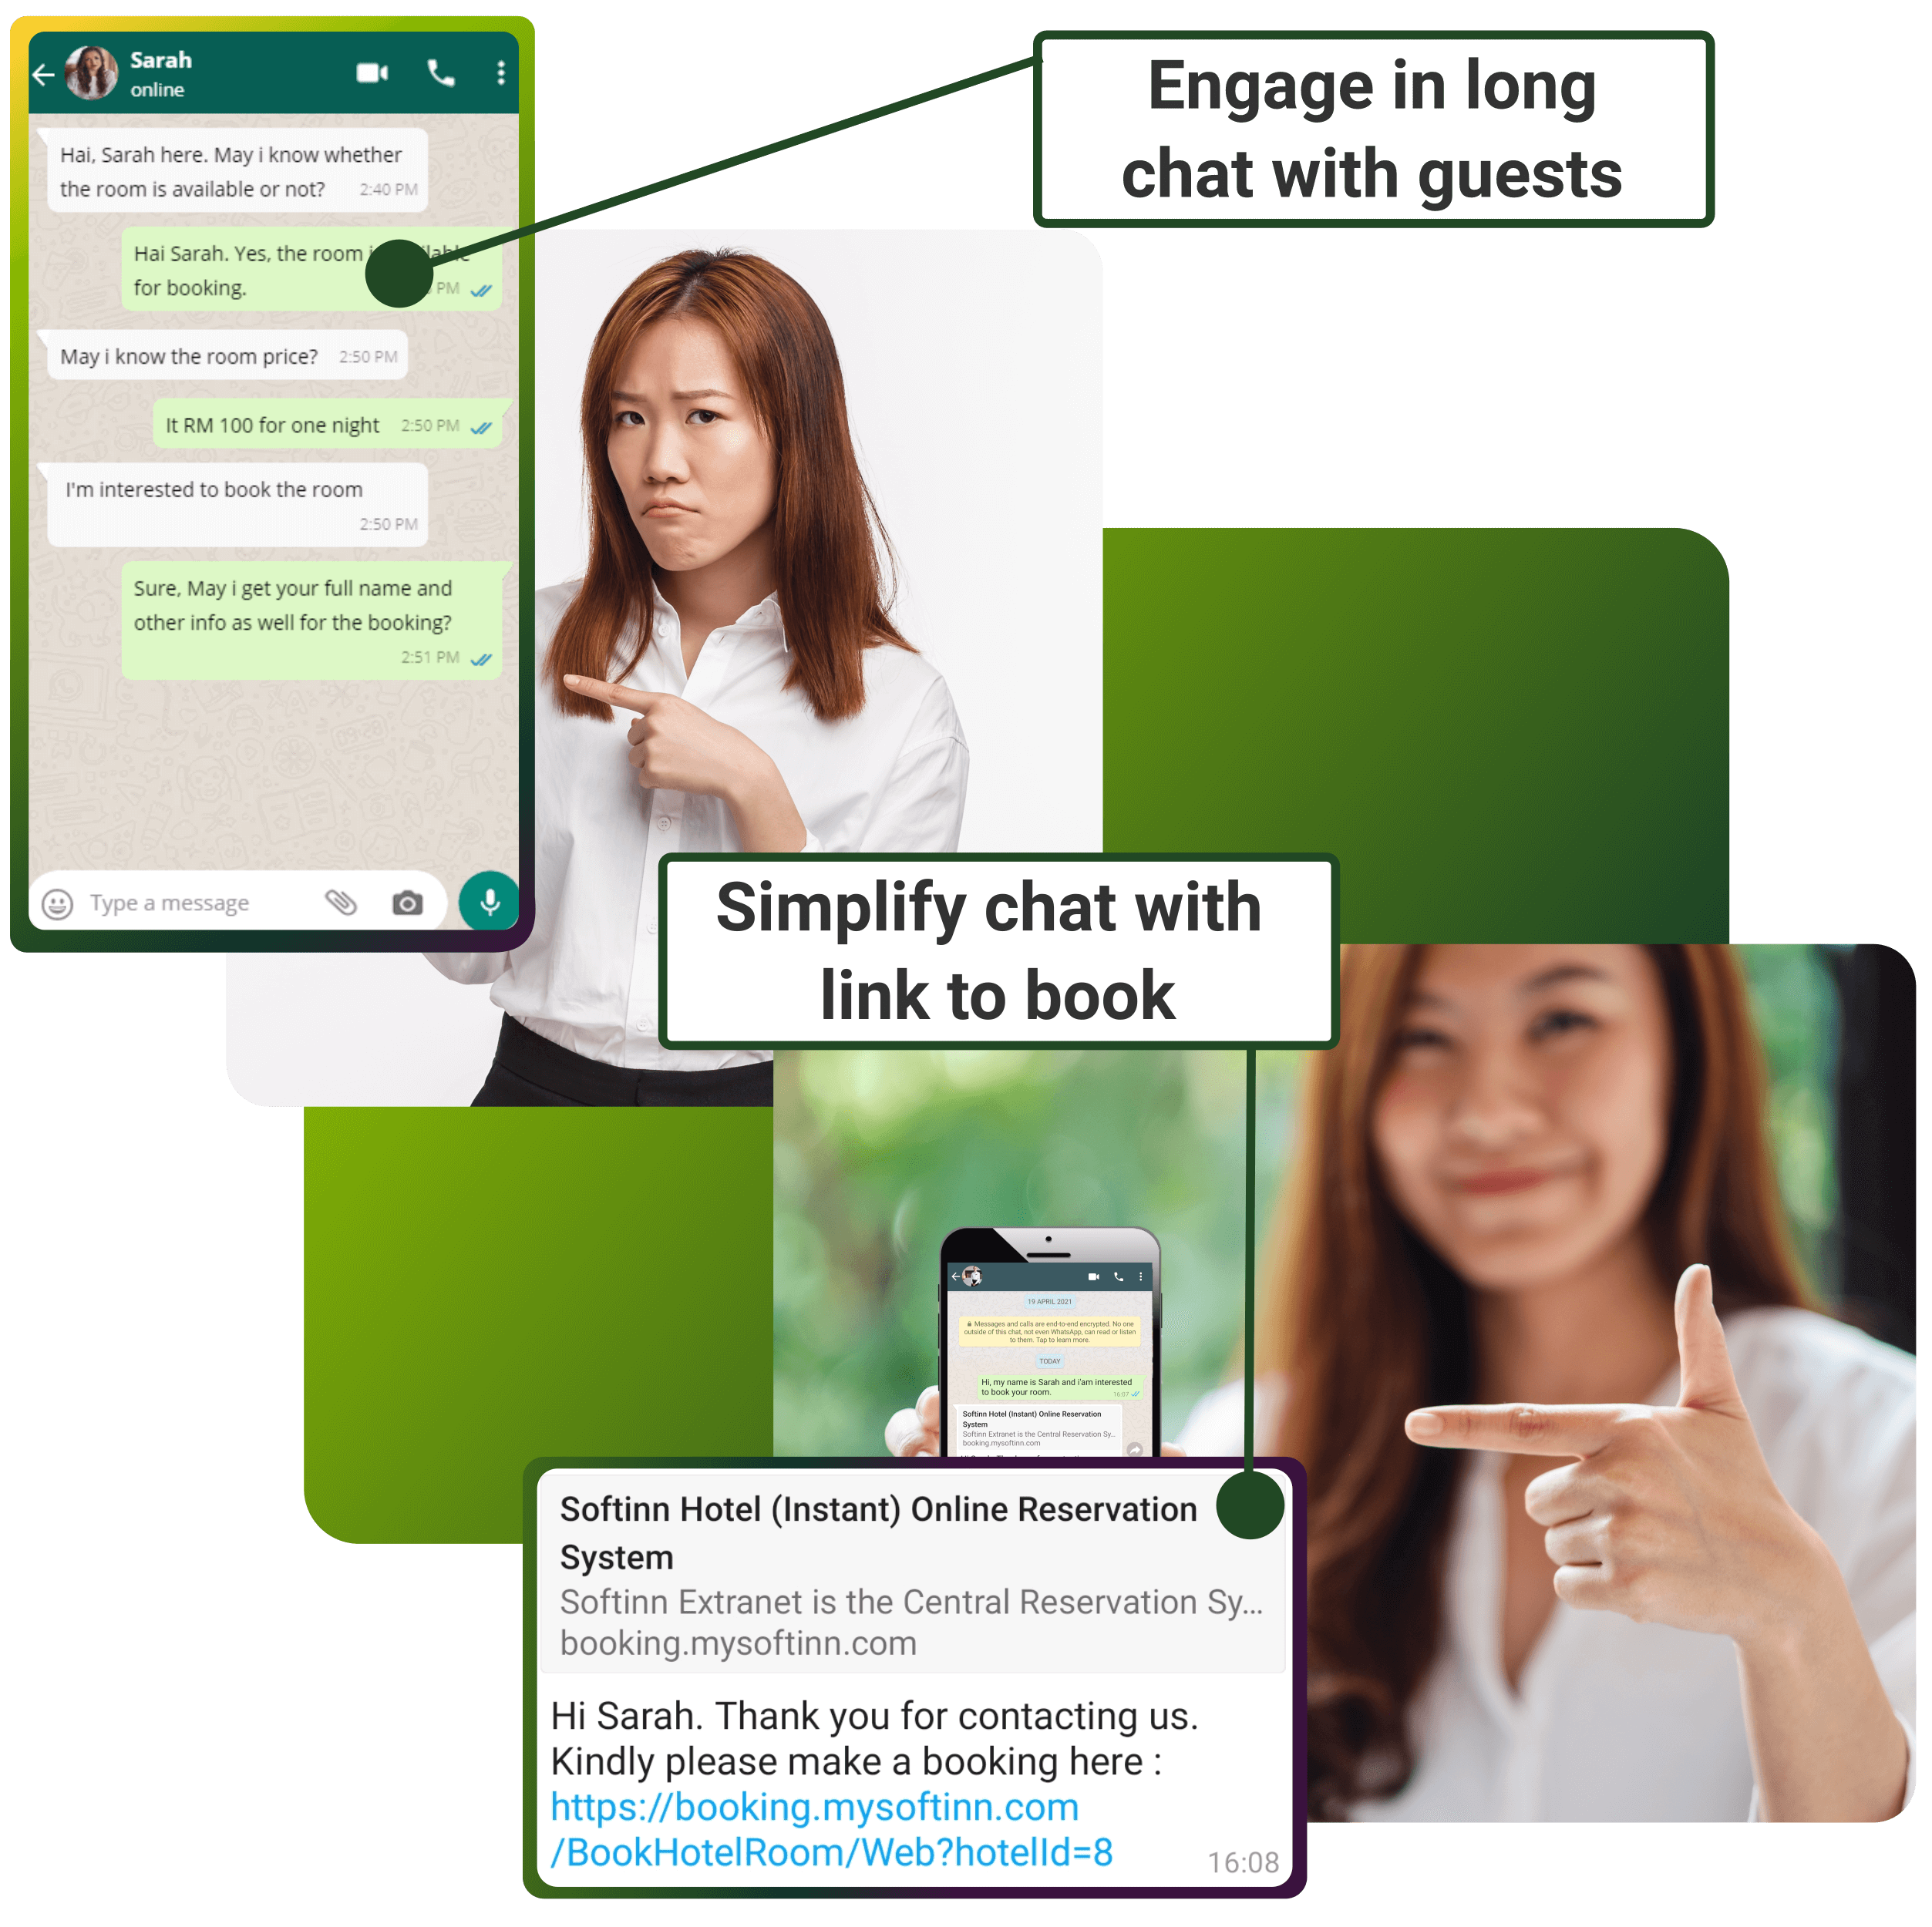 host-whatapps-answer-for-guests-to-book-t1